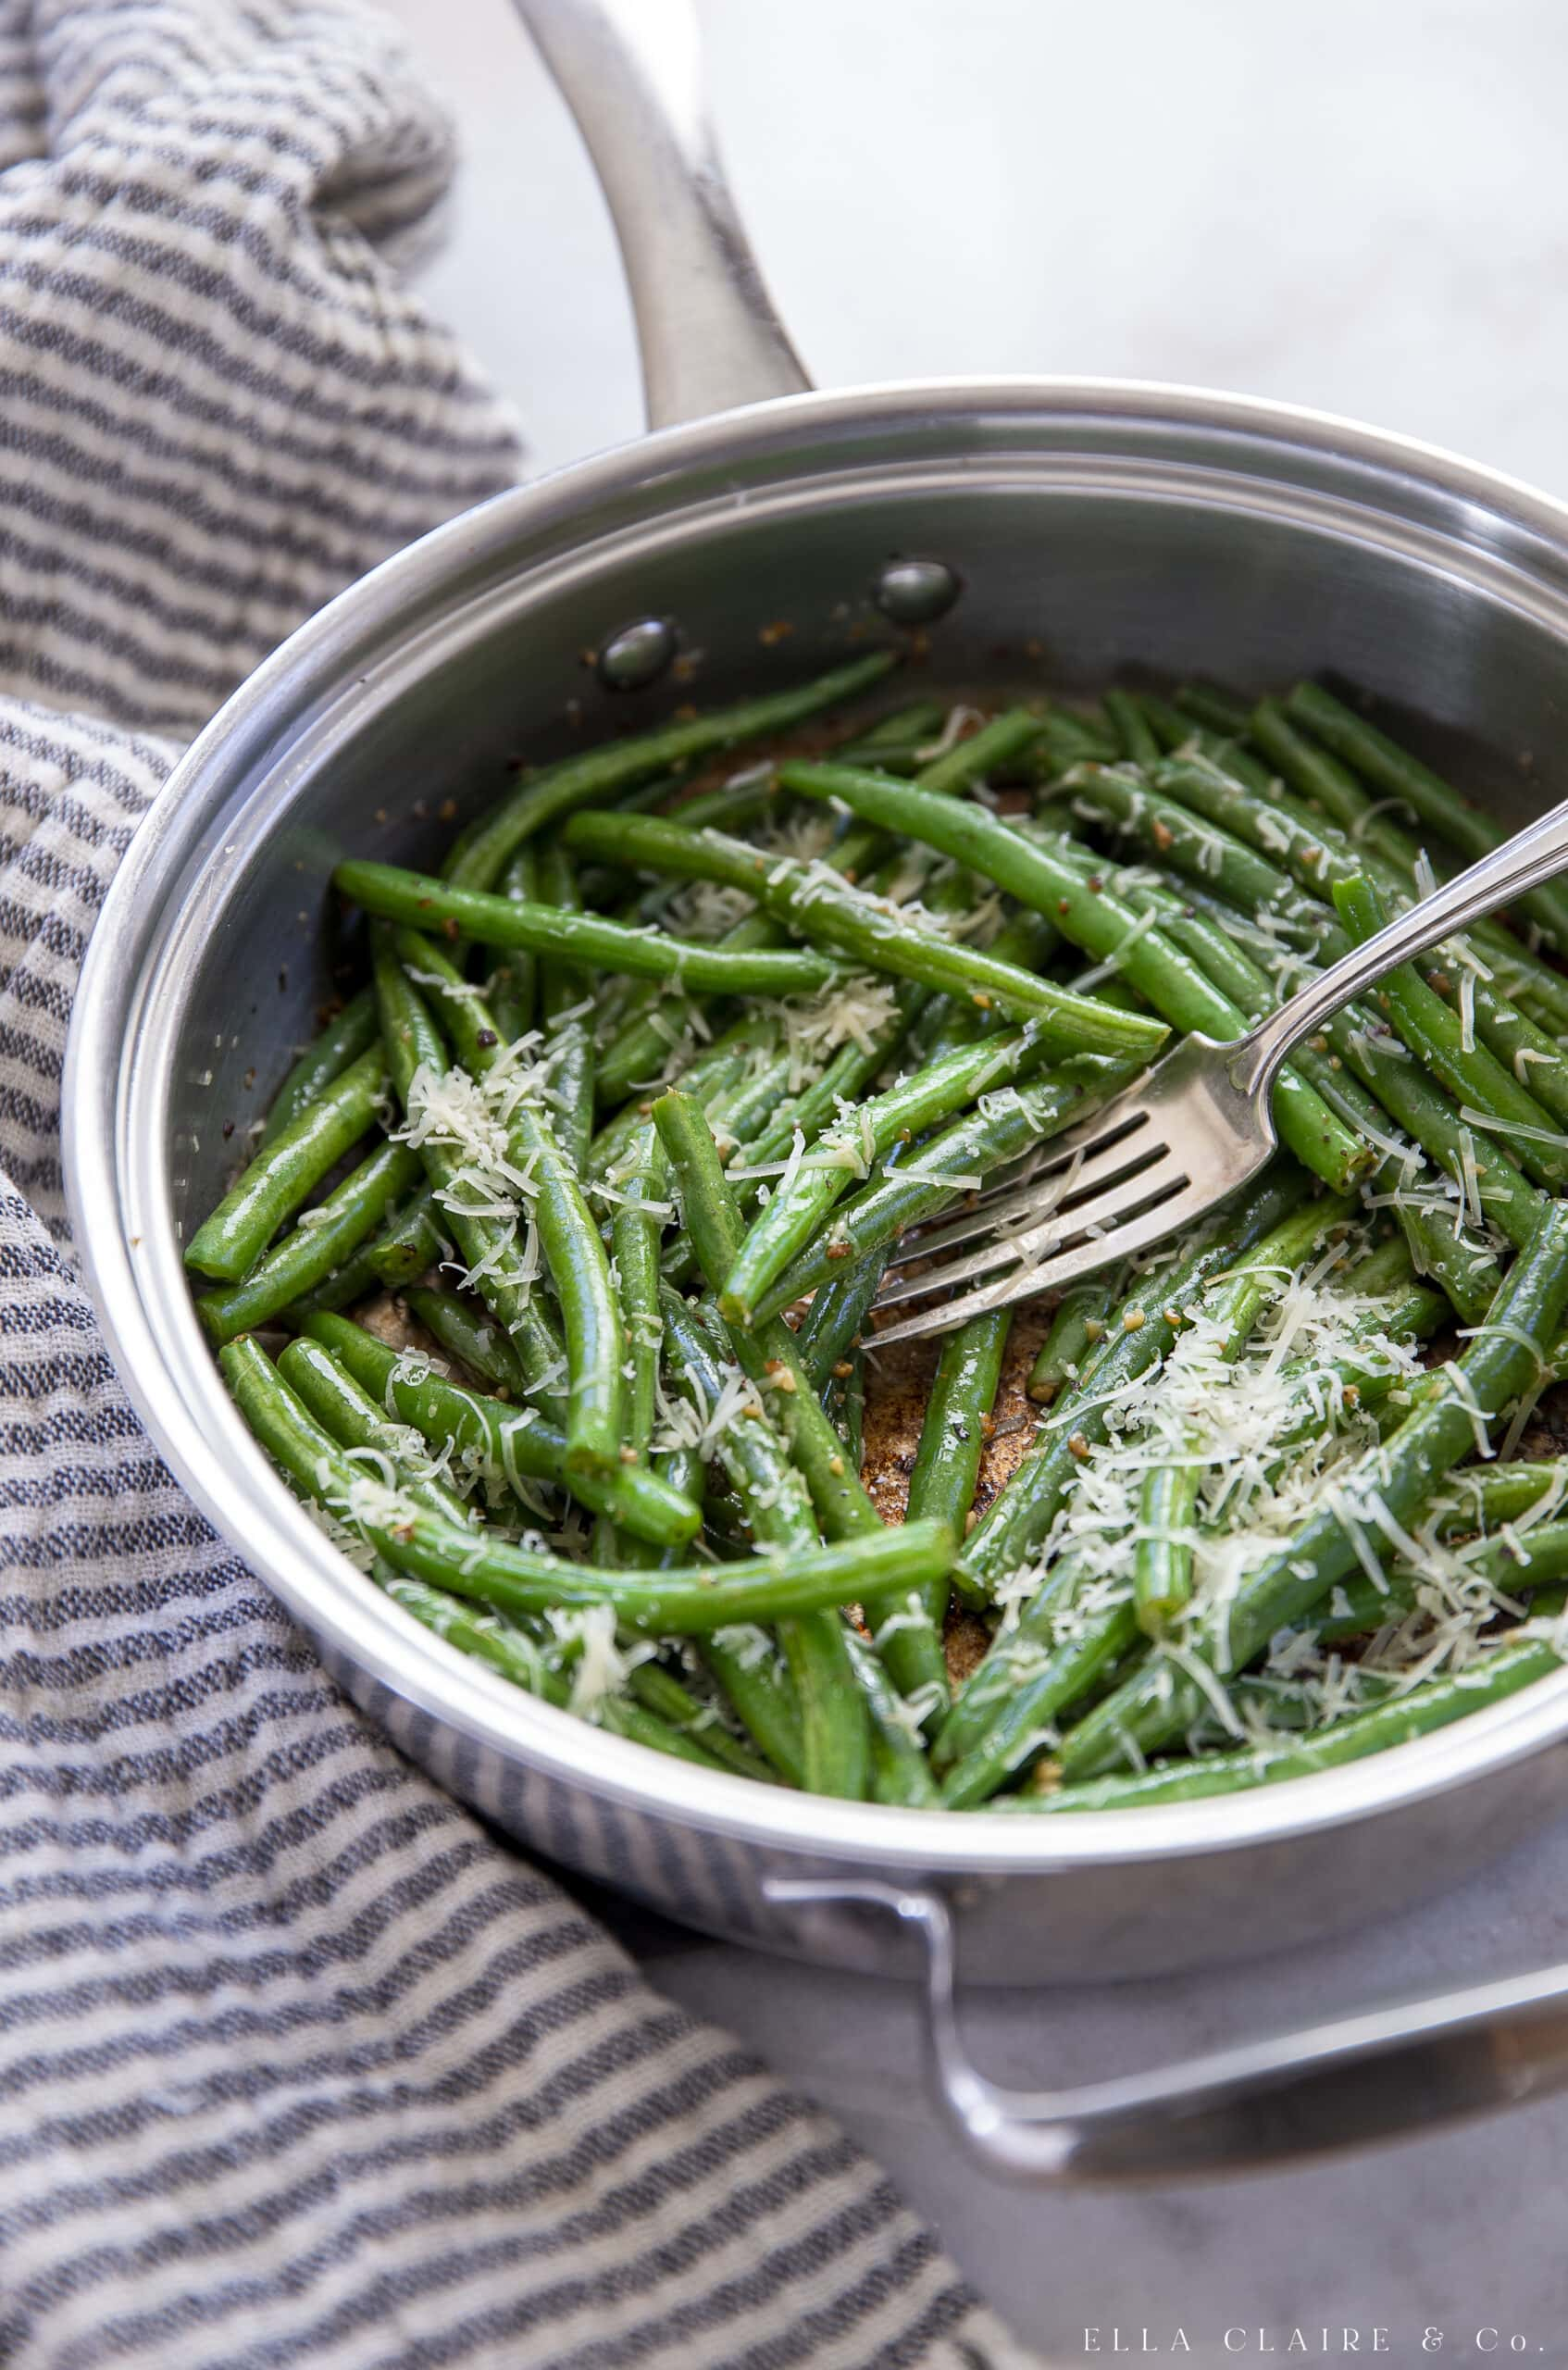 Cooking green beans in skillet